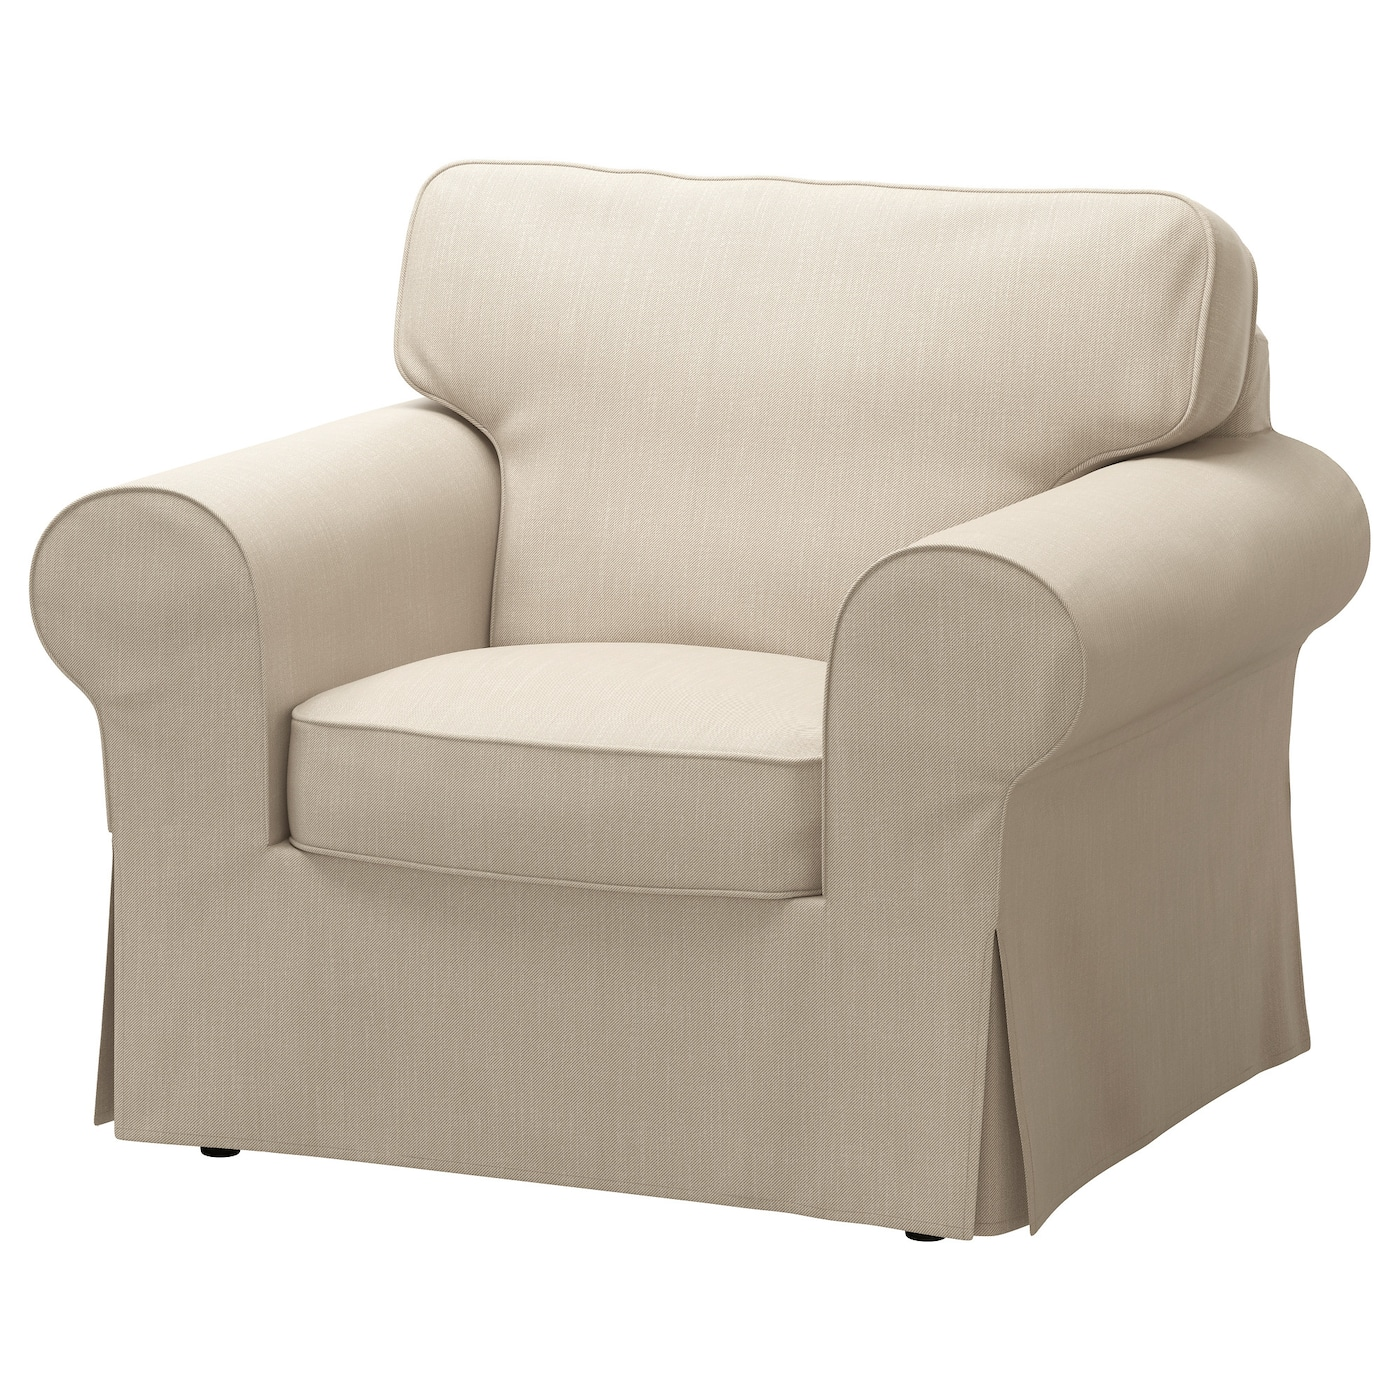 IKEA EKTORP armchair The cover is easy to keep clean as it is removable and can  sc 1 st  Ikea & Armchairs u0026 Recliner Chairs | IKEA islam-shia.org